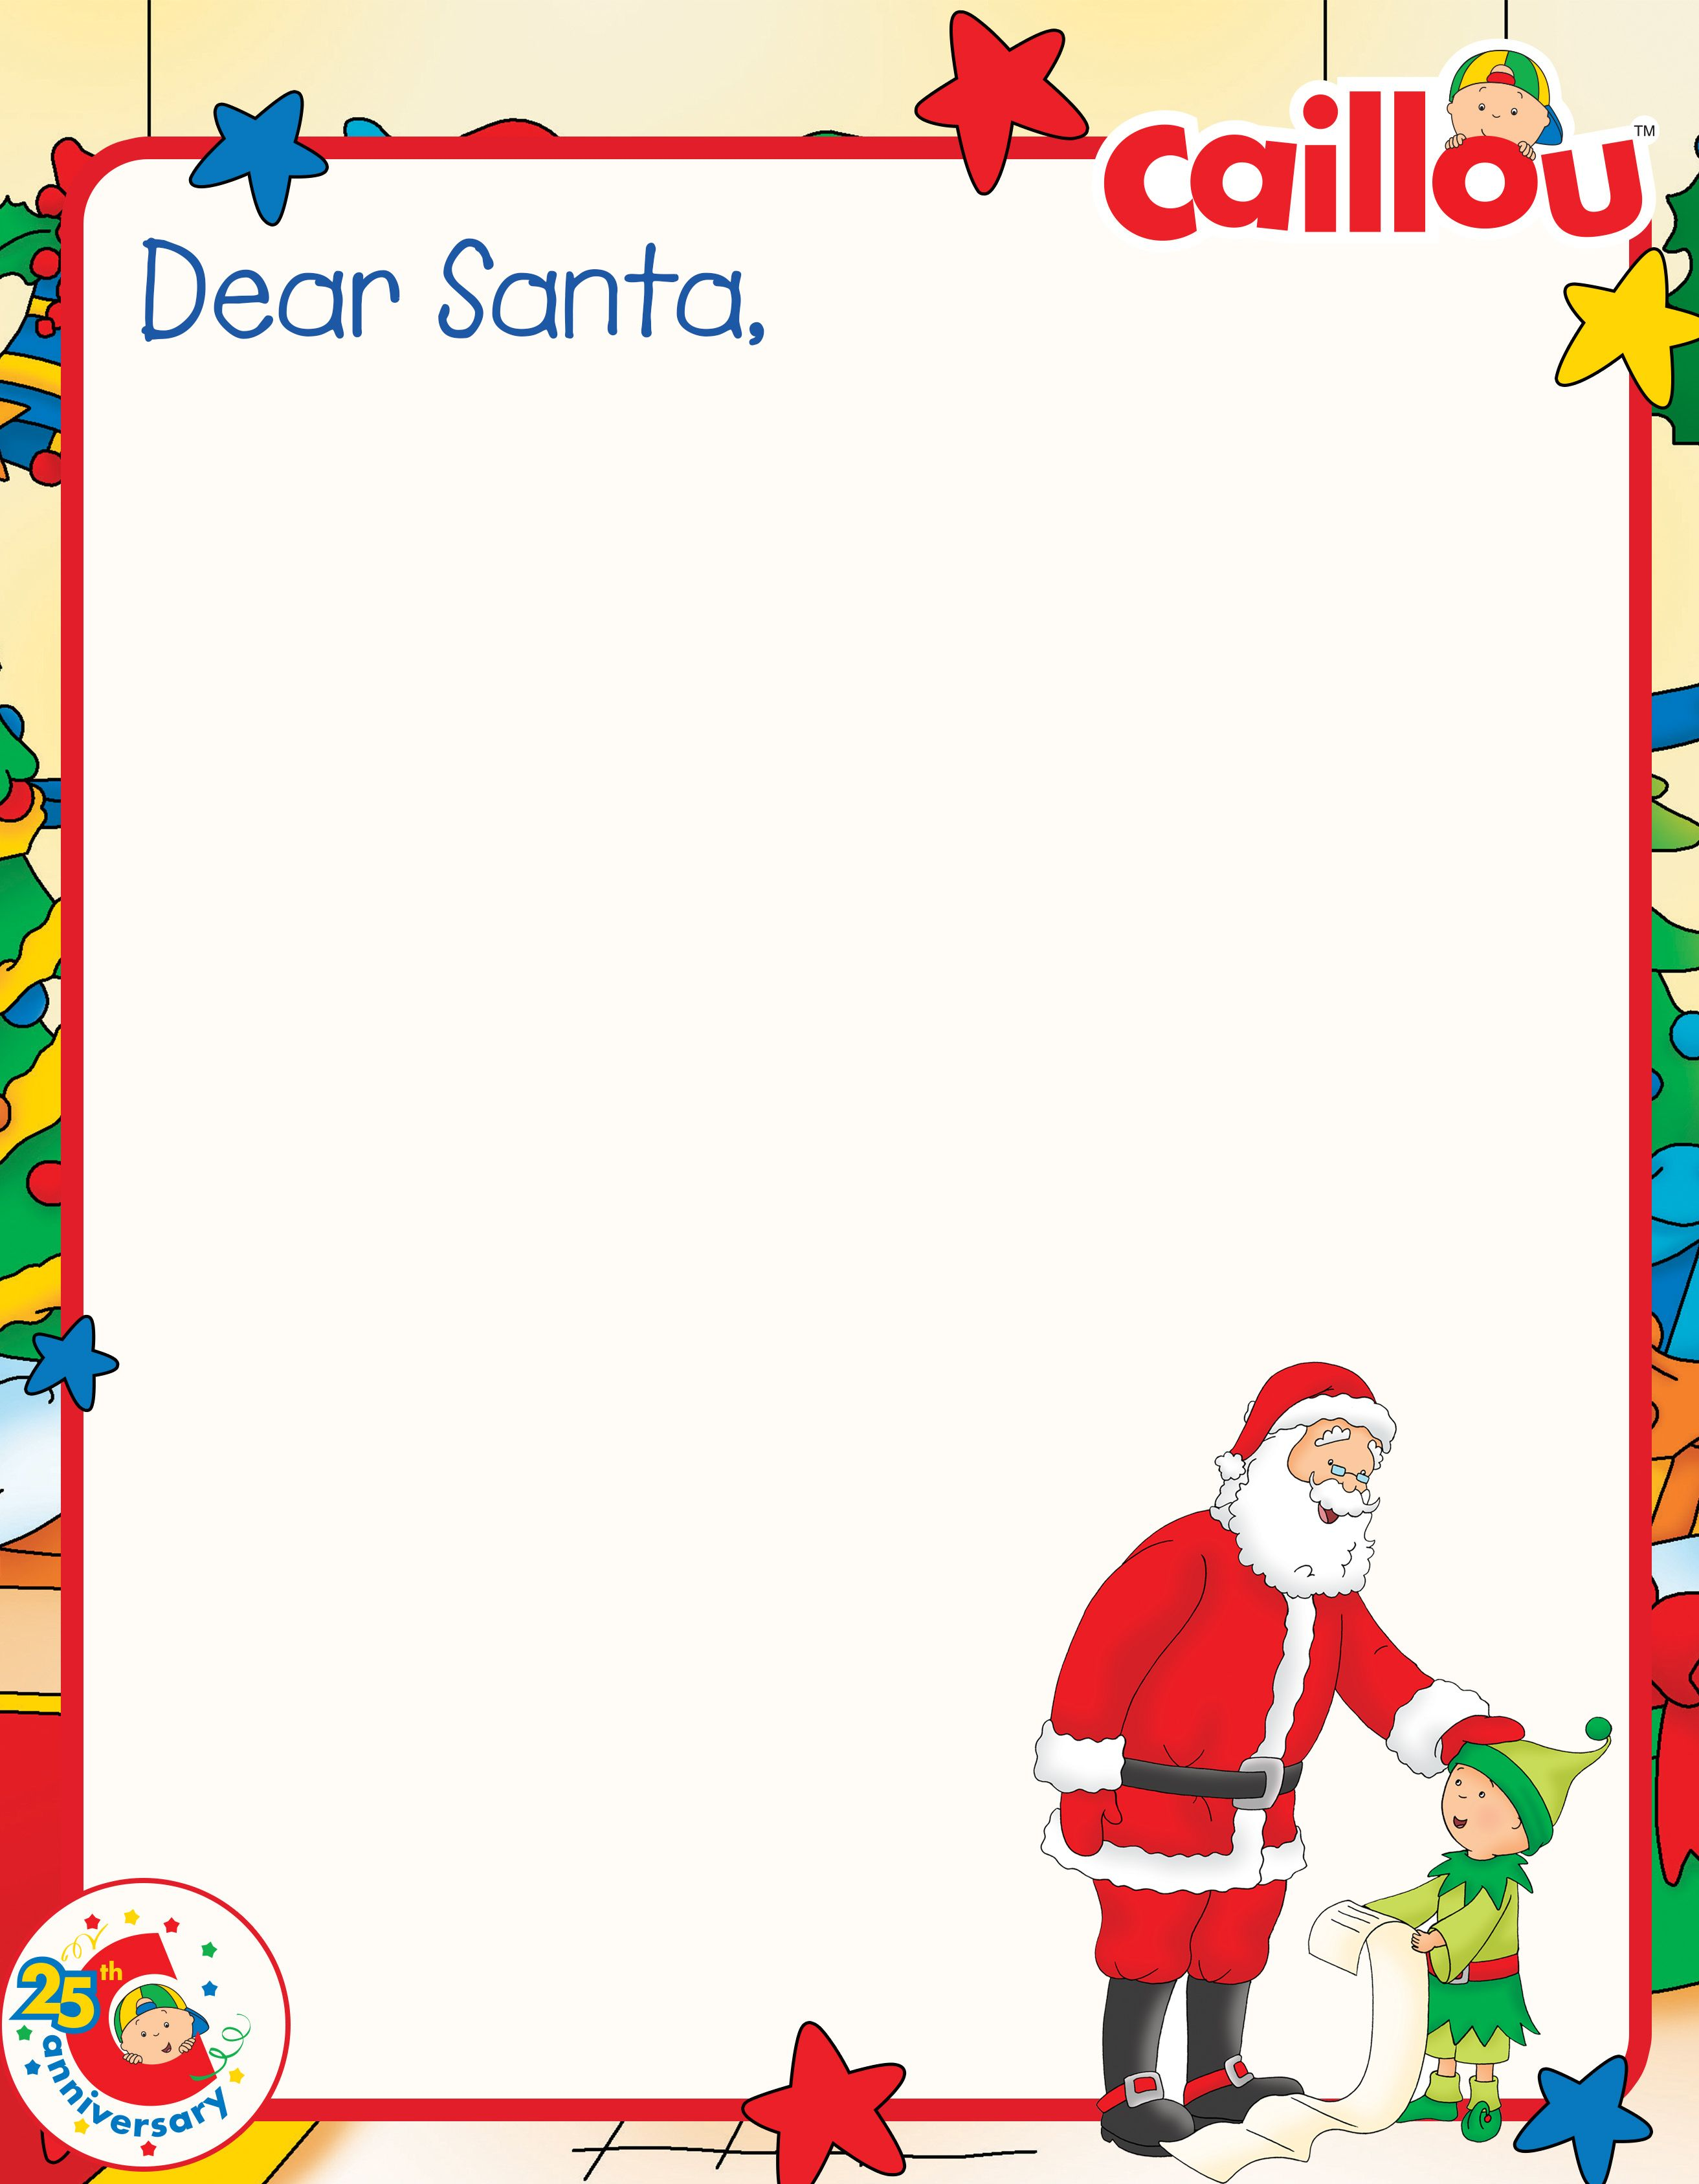 Dear Santa Letter Coloring Page With PBS KIDS Holiday Pages Printables INCARCERATED FAMILY